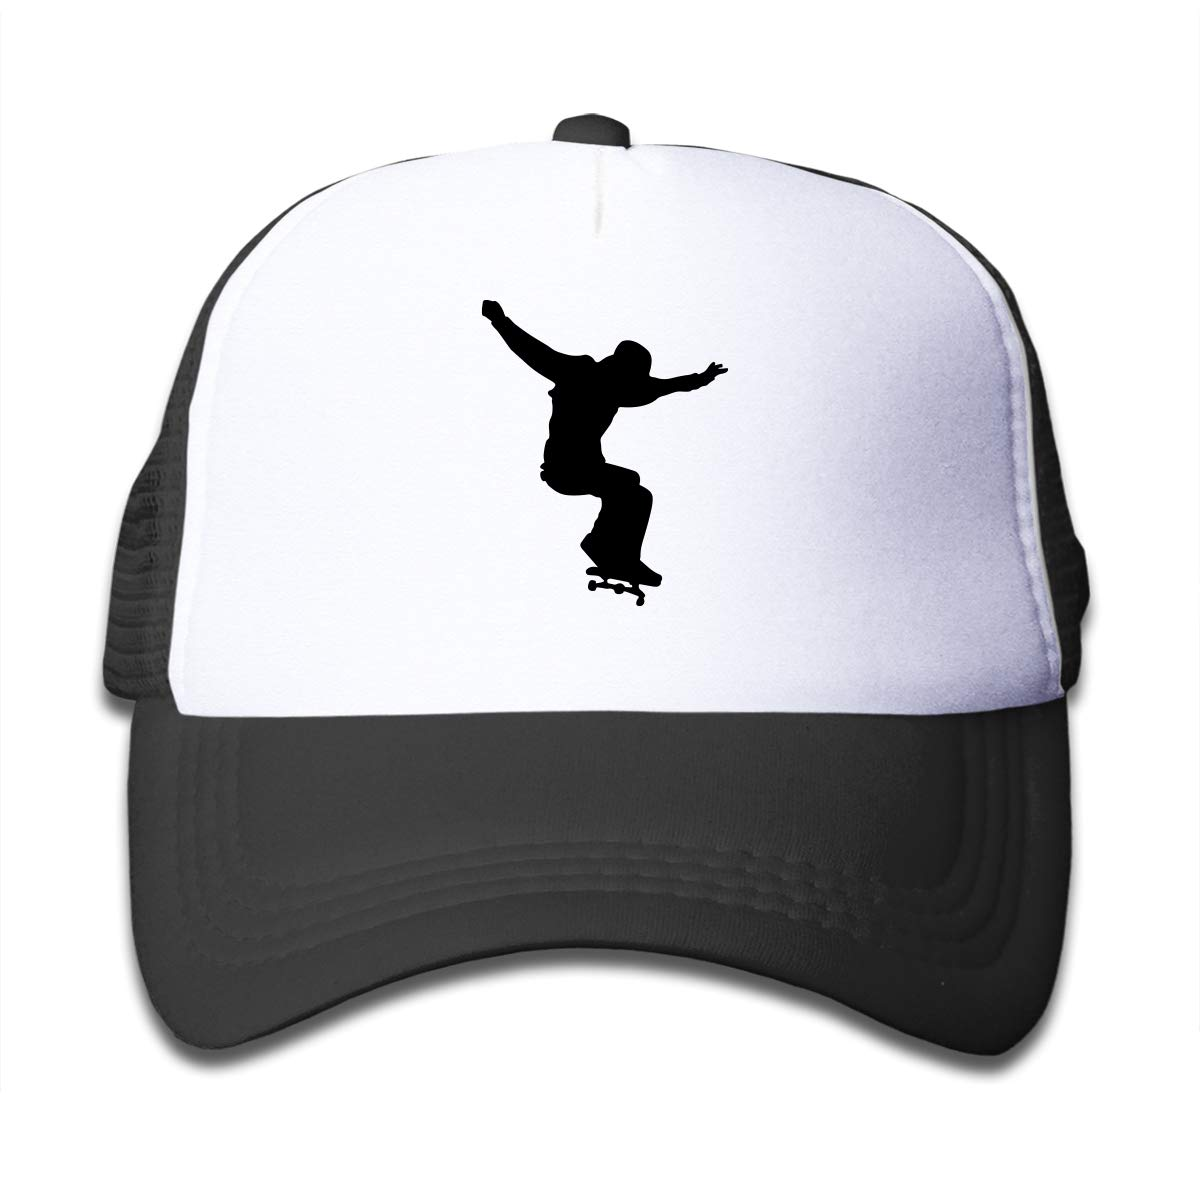 WGERTOG Skateboard Skater On Kids Trucker Hat Youth Toddler Mesh Hats Baseball Cap